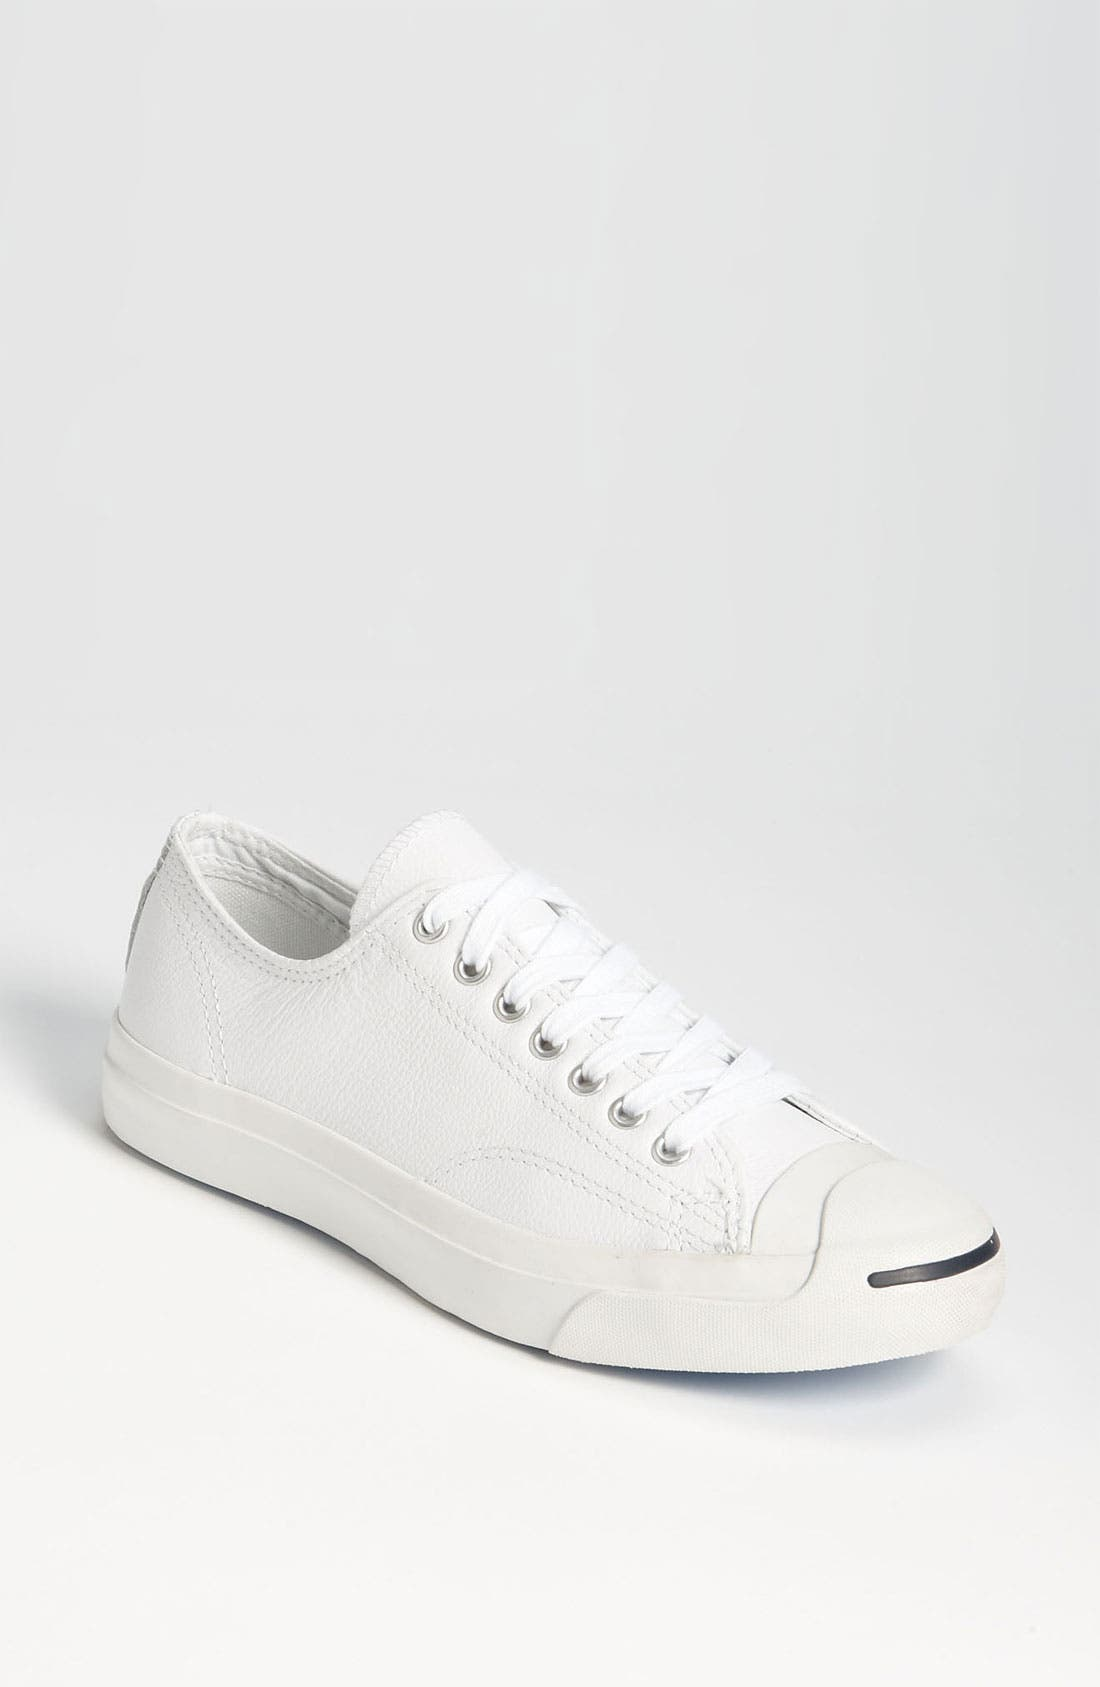 Main Image - Converse 'Jack Purcell' Leather Sneaker (Women)